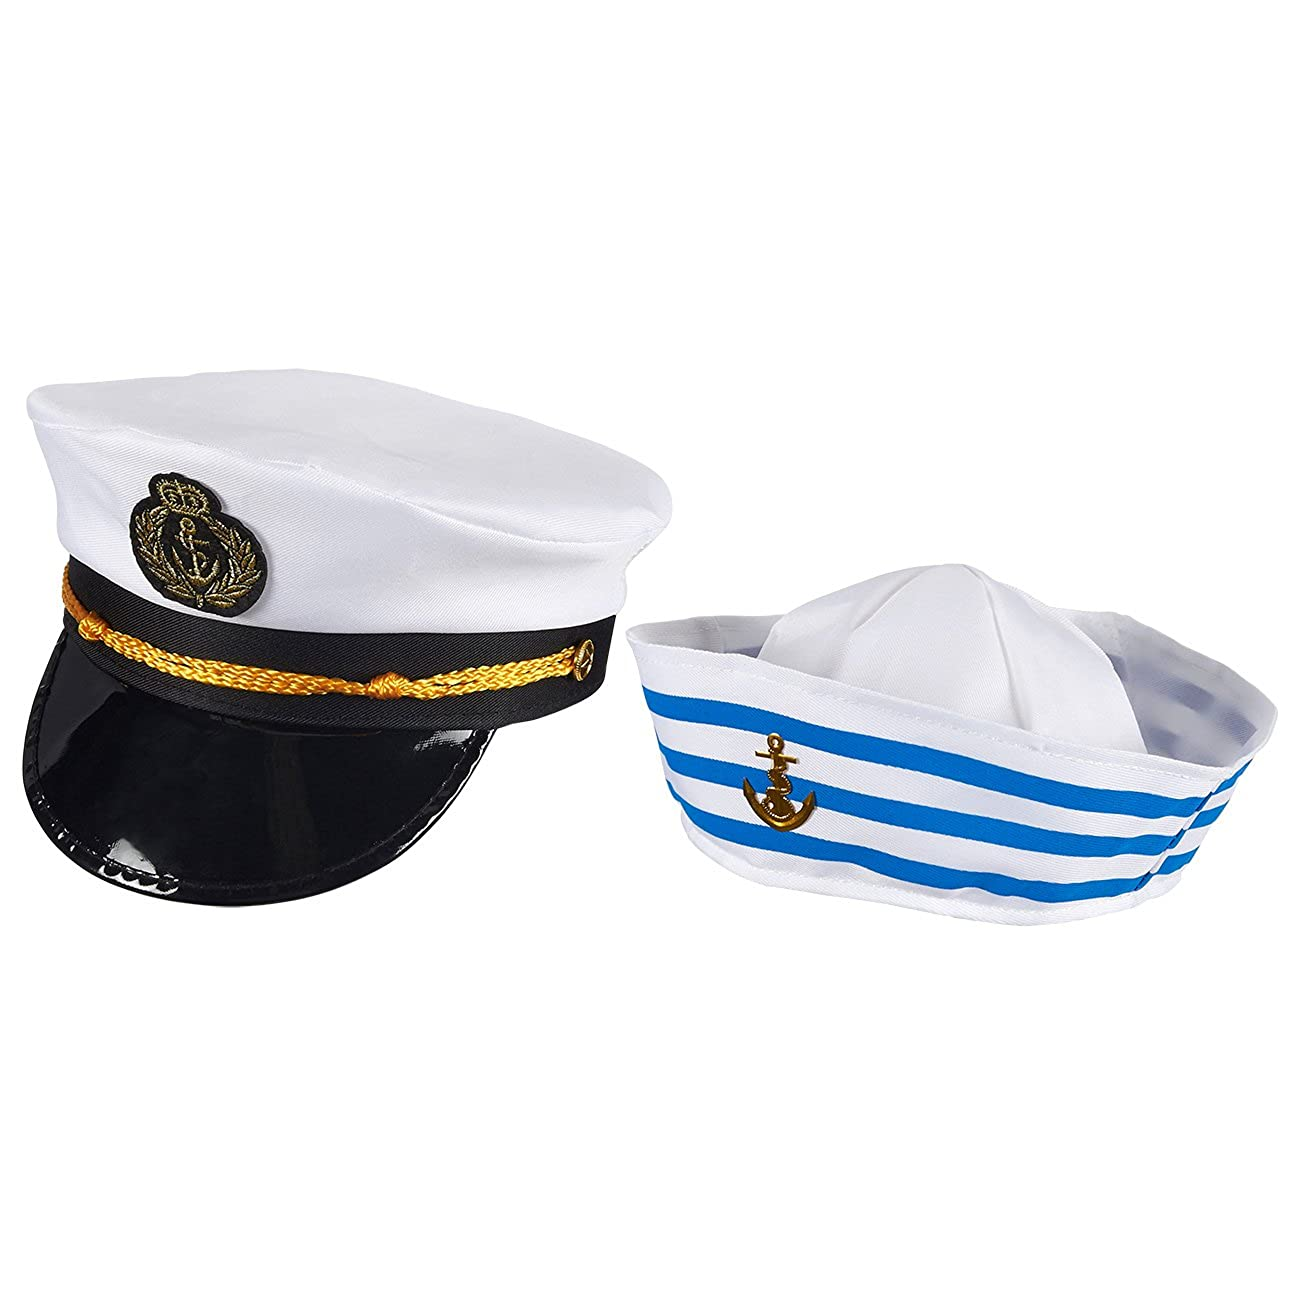 e703fbecea652 Amazon.com  Blue Panda Captain Hat and Sailor Hat - Pack of 2 - Yacht Hats  for Men and Women - One Size Fits Most Adults  Clothing